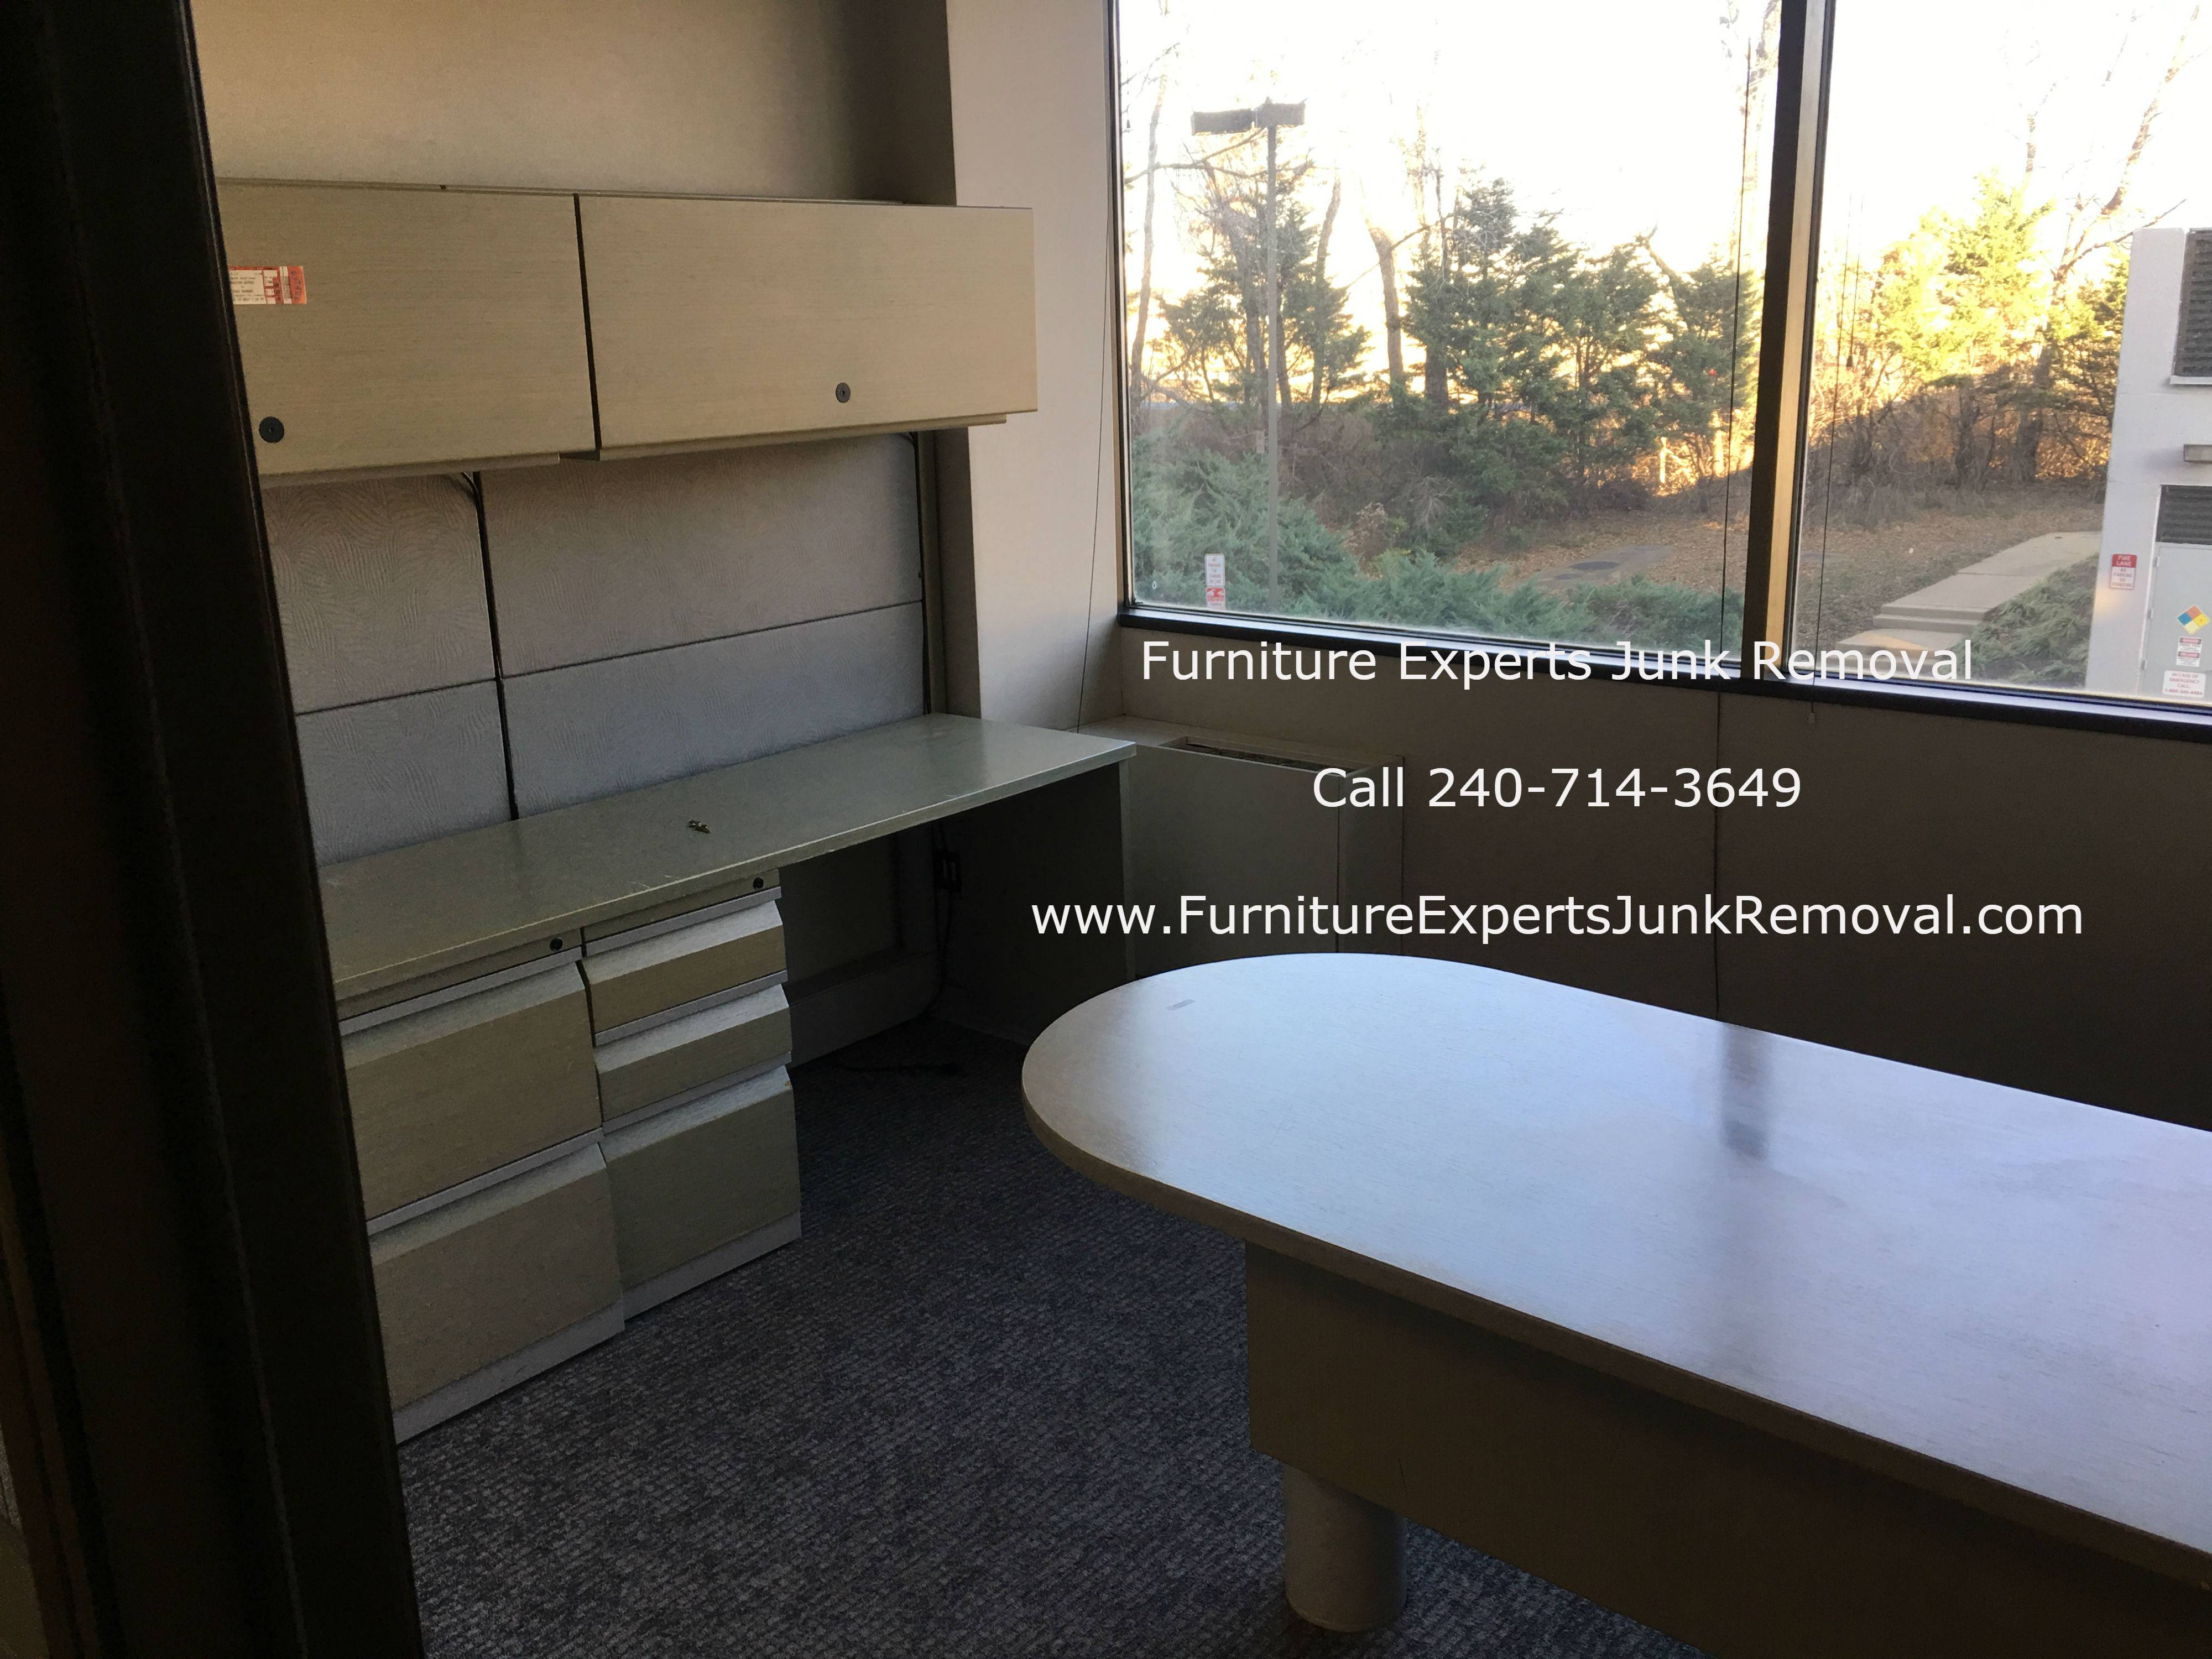 Junk office furniture removal in Baltimore MD